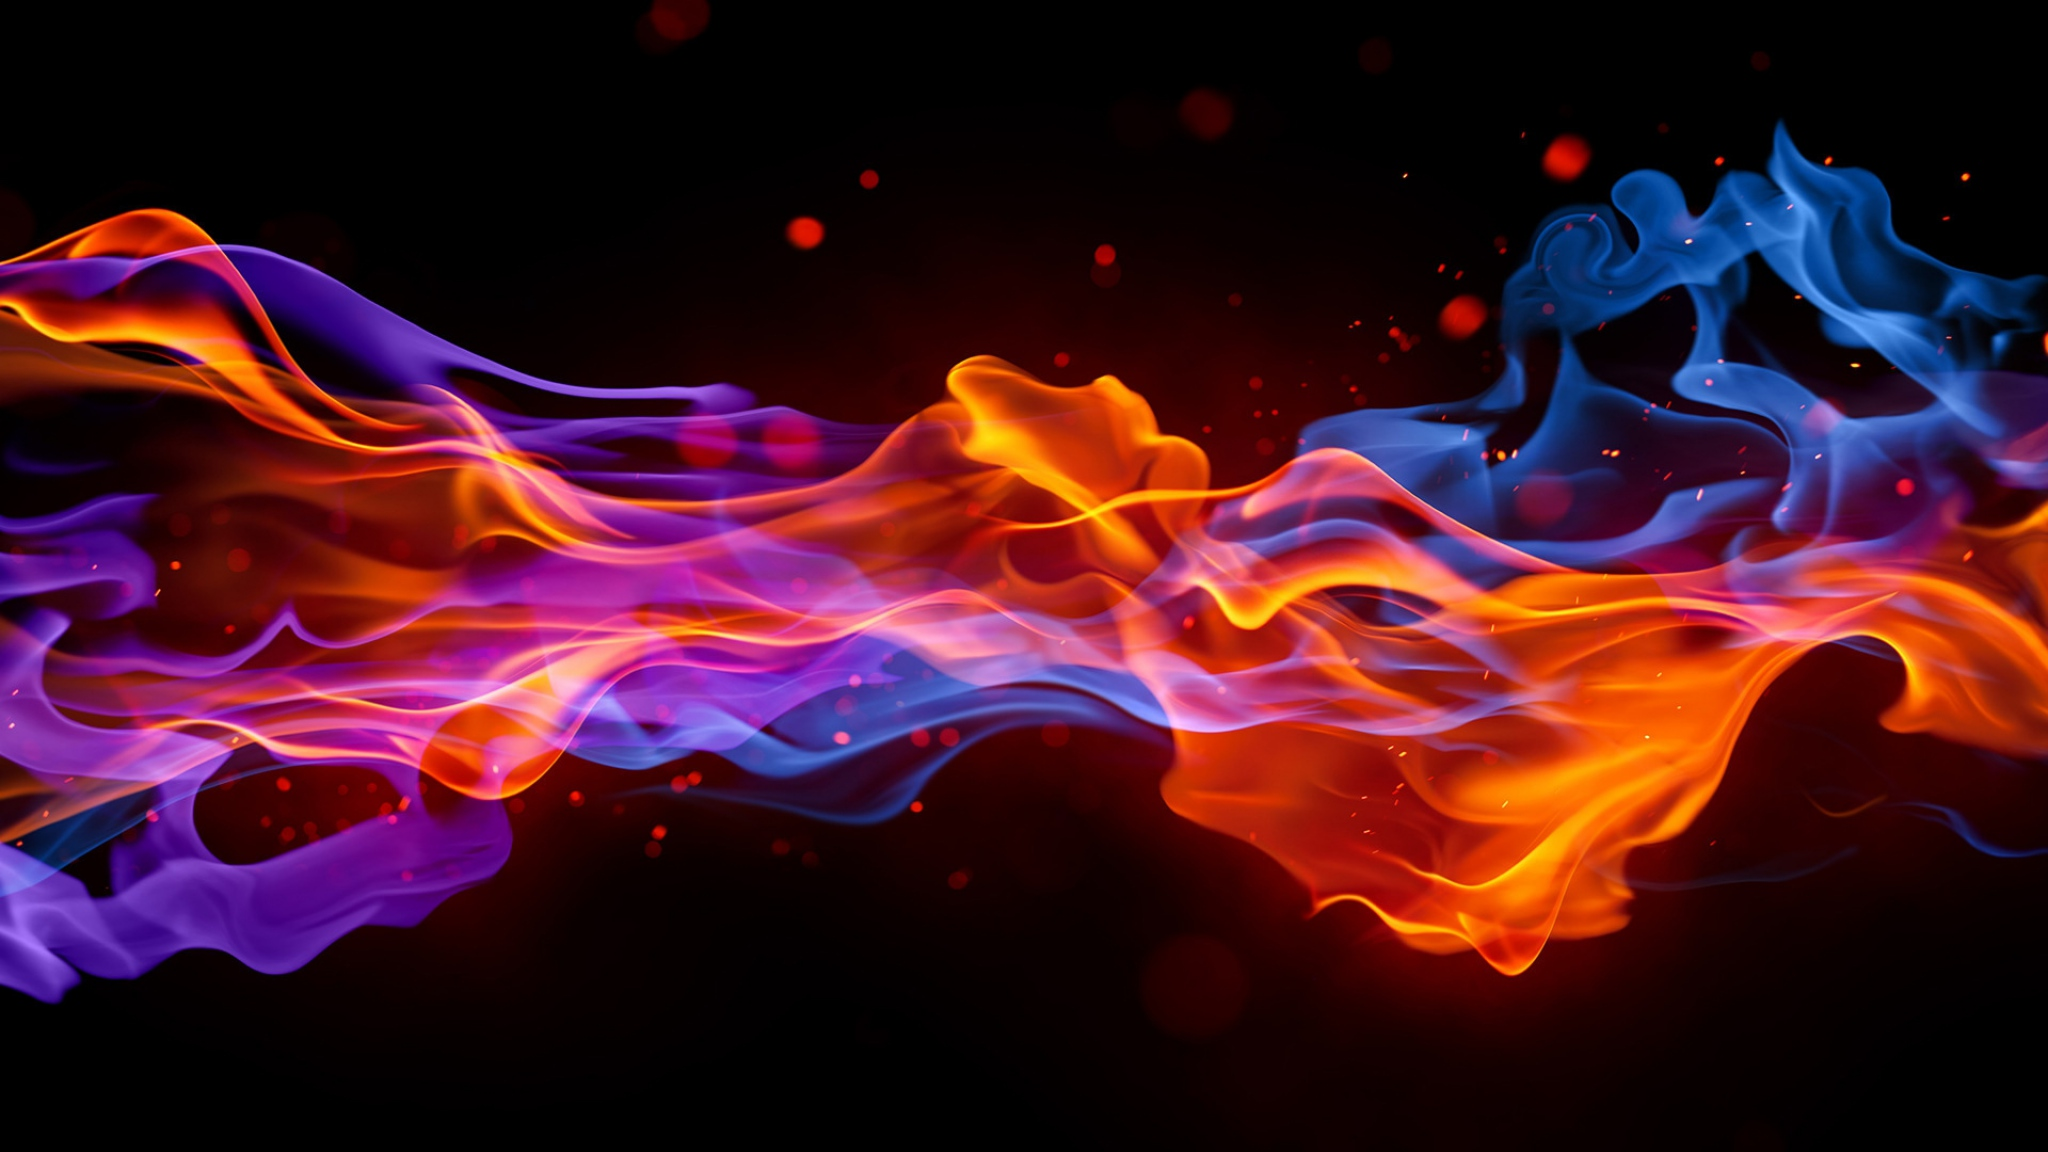 Download Wallpaper 2048x1152 Smoke Fire Bright Colorful Background 2048x1152